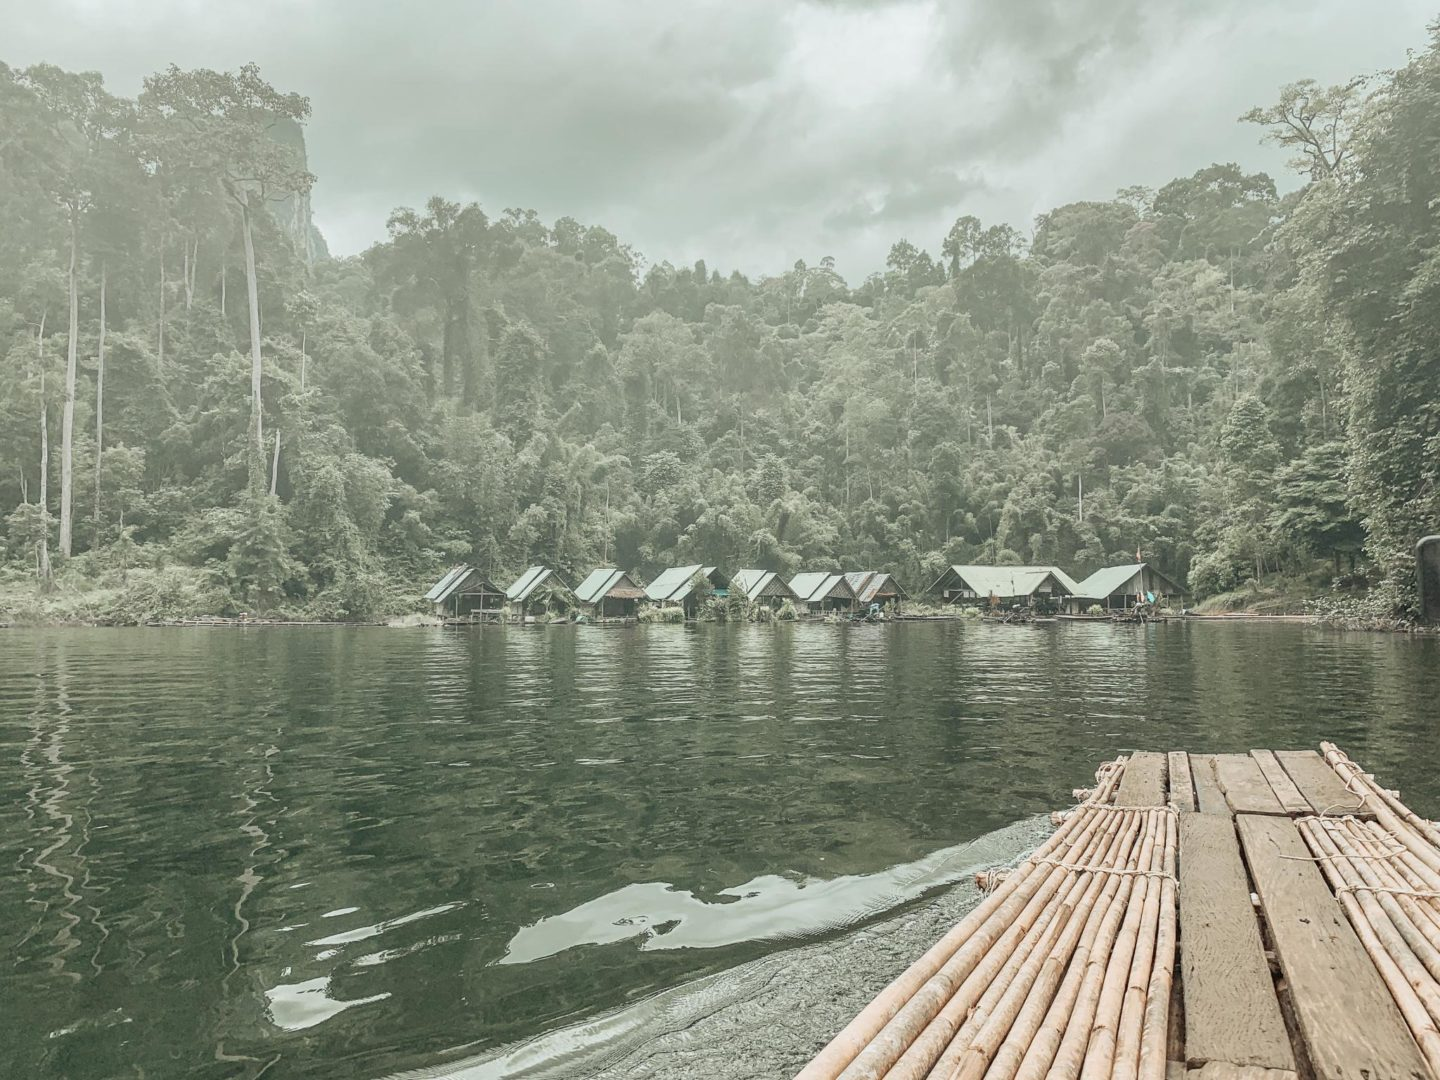 The view from the bamboo raft on Ha Roi Rai towards the floating ranger station